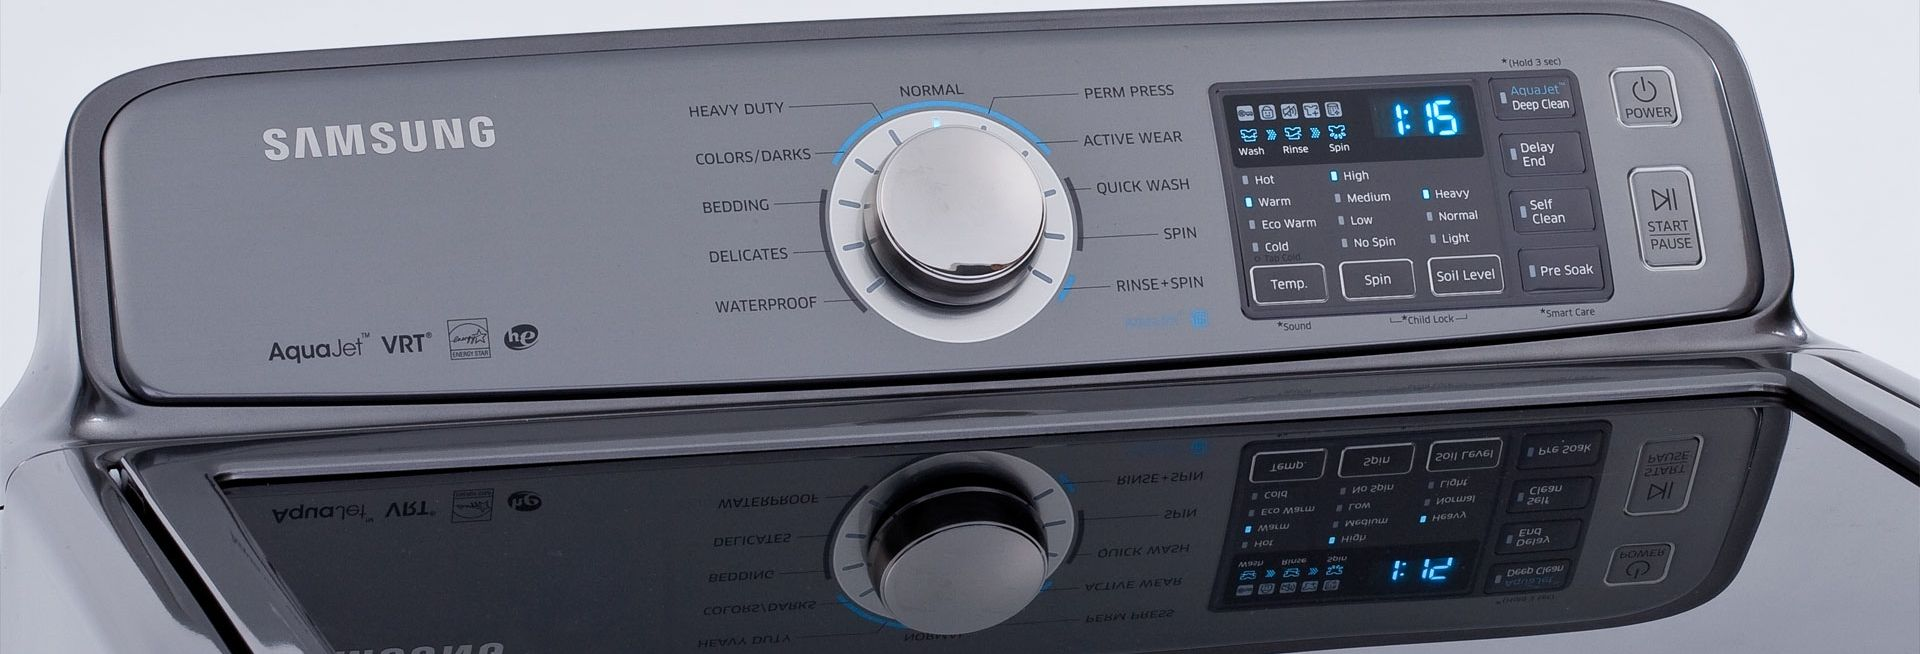 How to make your washer and dryer last longer new washer